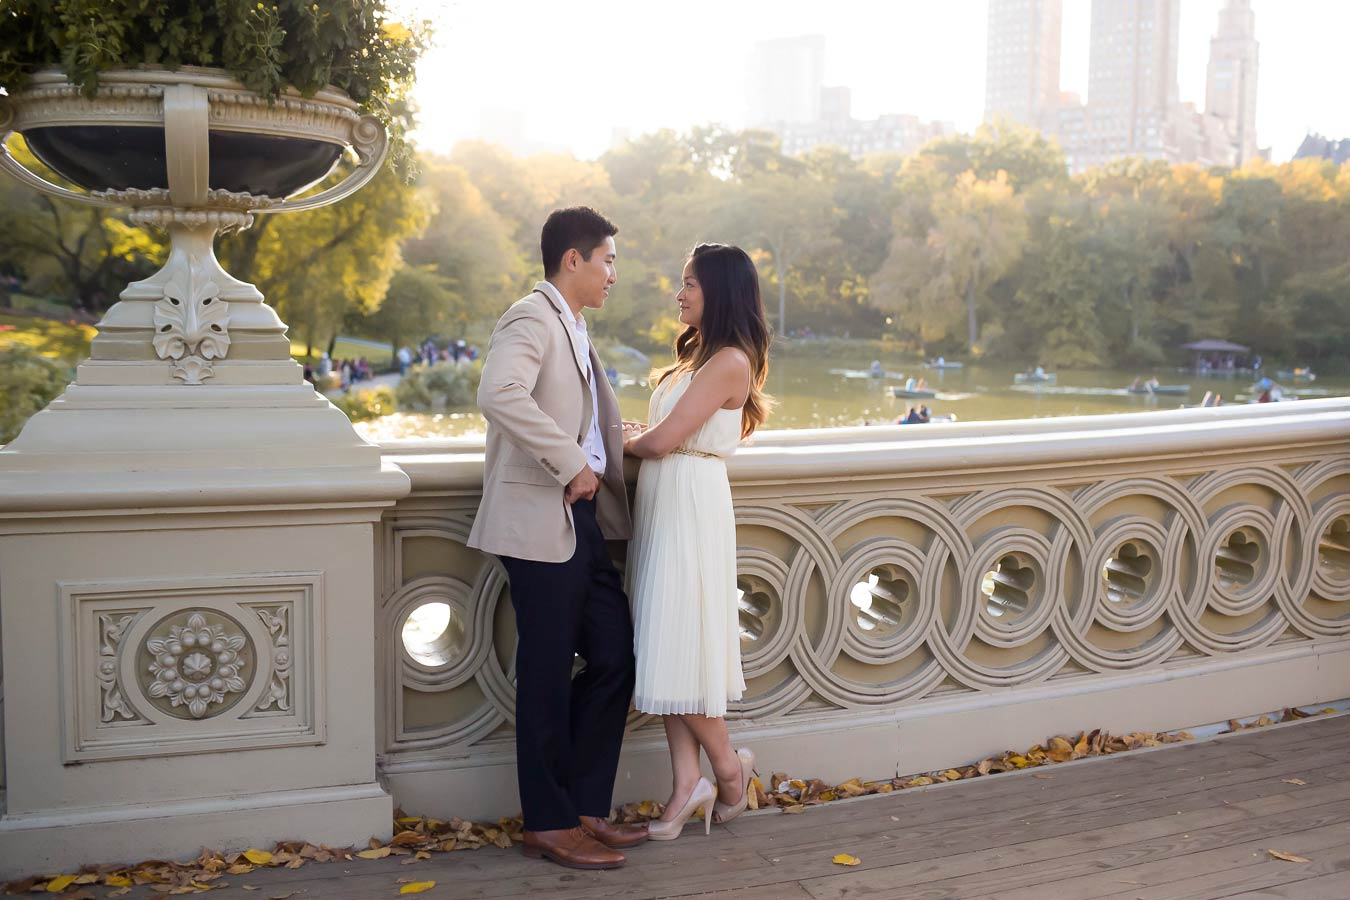 central-park-nyc-engagement-photographer-best0043.jpg